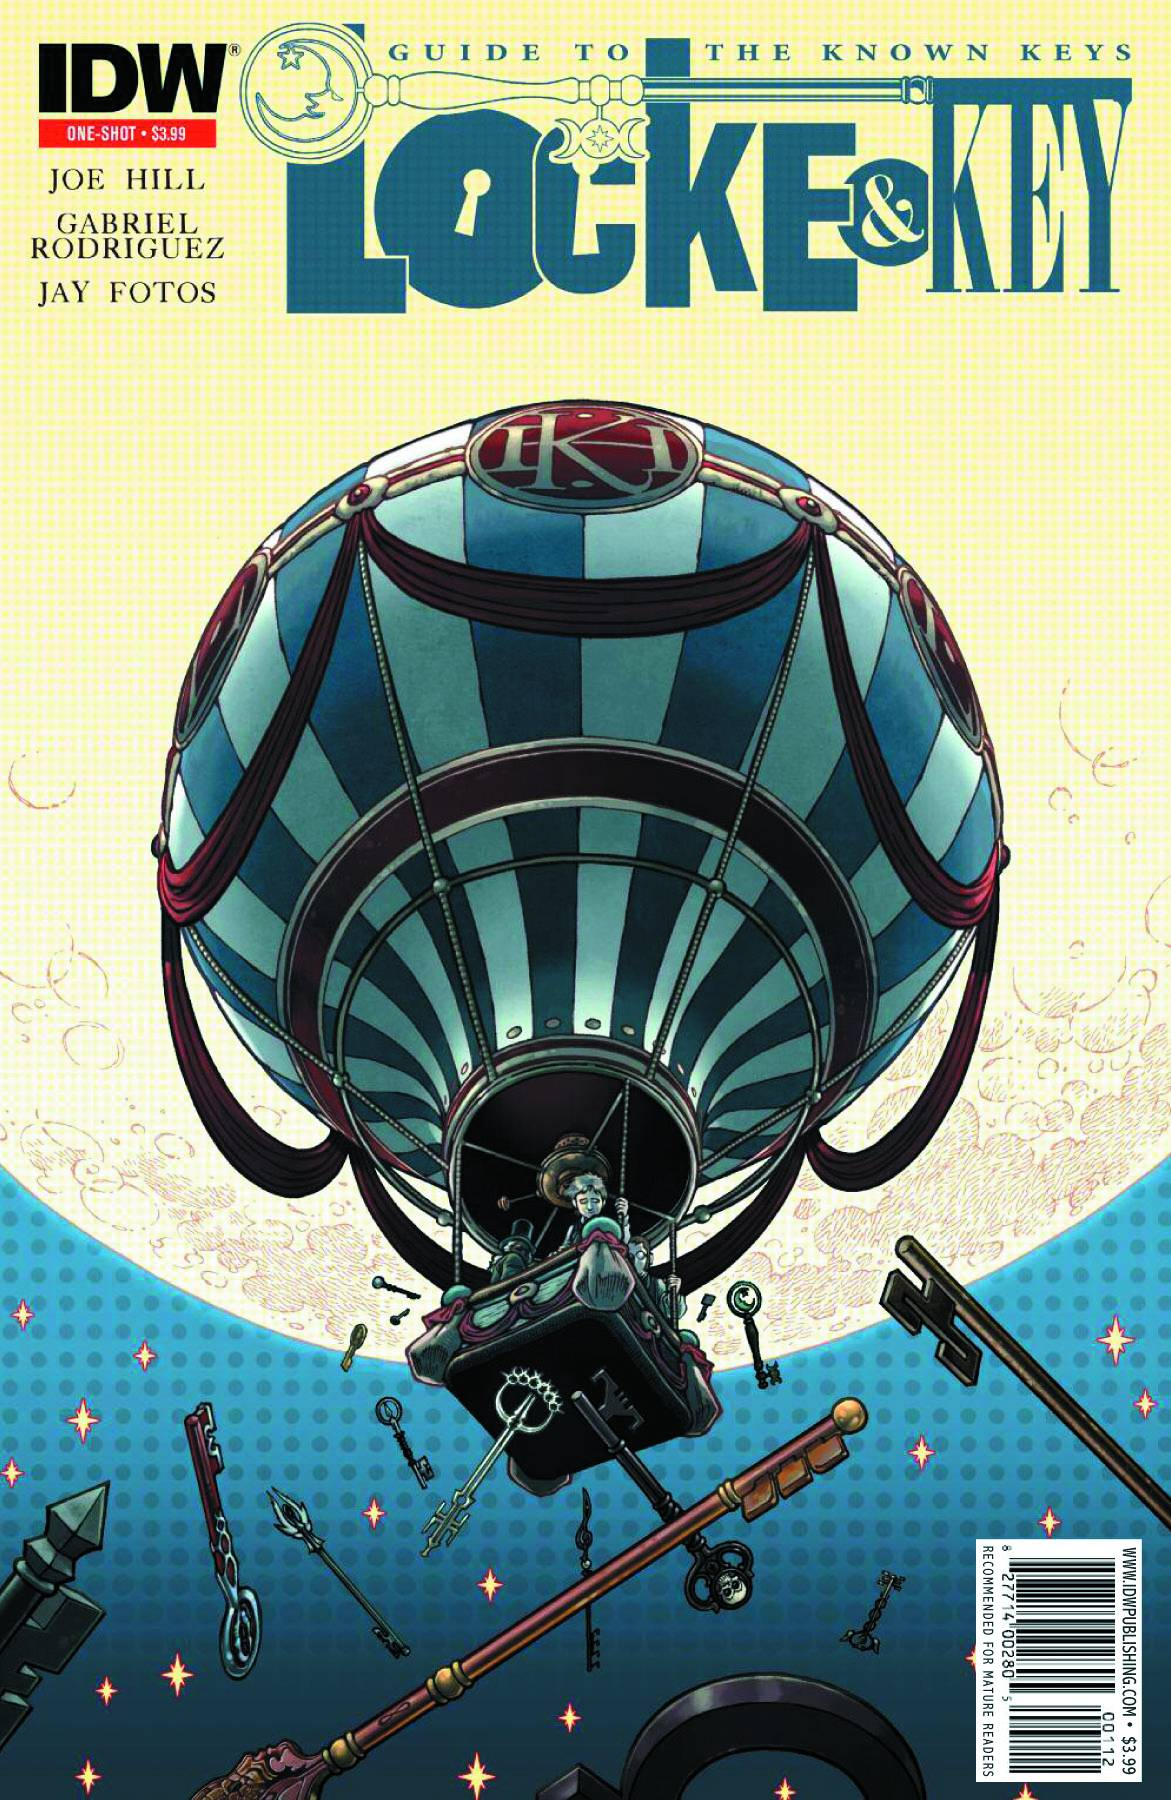 Locke And Key The Guide To The Known Keys (One Shot)(Gabriel Rodriguez 2nd Printing Variant Cover)